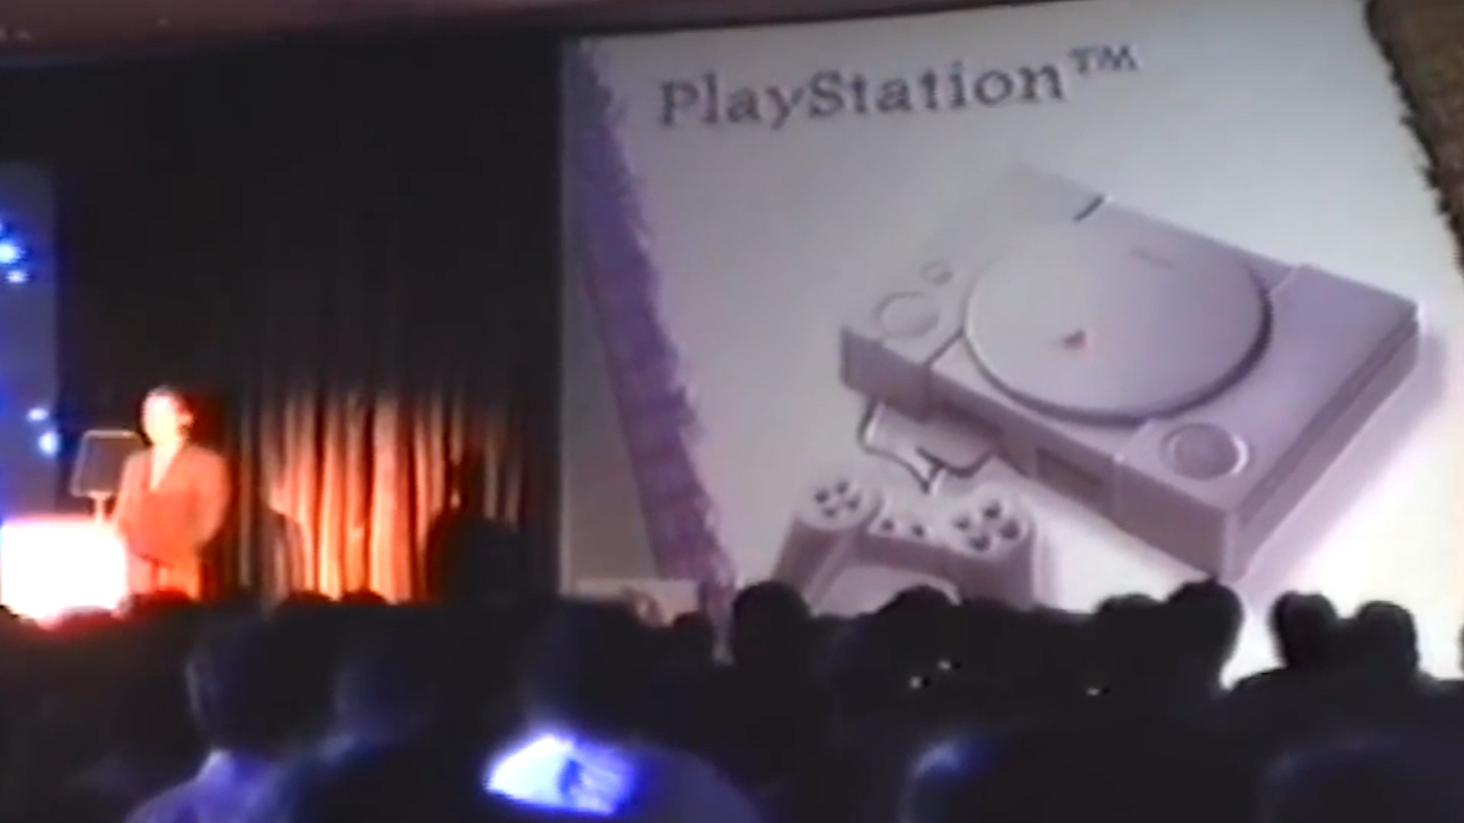 Looking back at 25 years of PlayStation